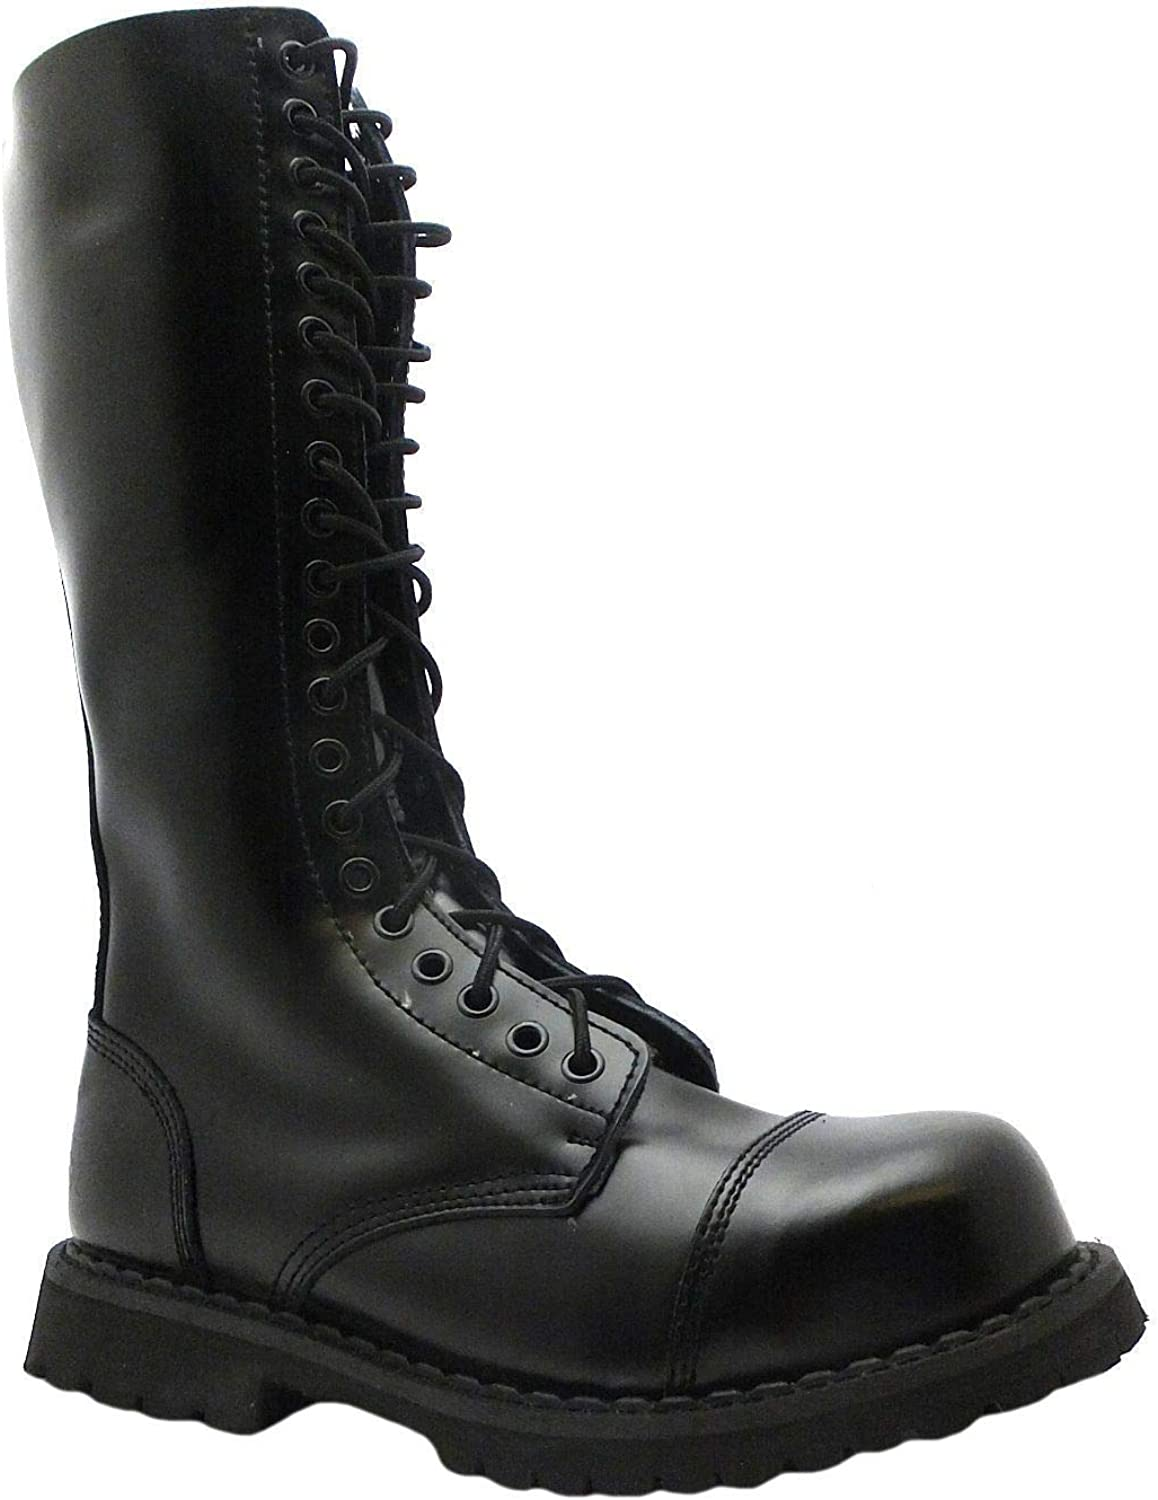 Grinders KingCS Men/'s Safety Steel Toe Cap Black Military Styles Lace up Boots